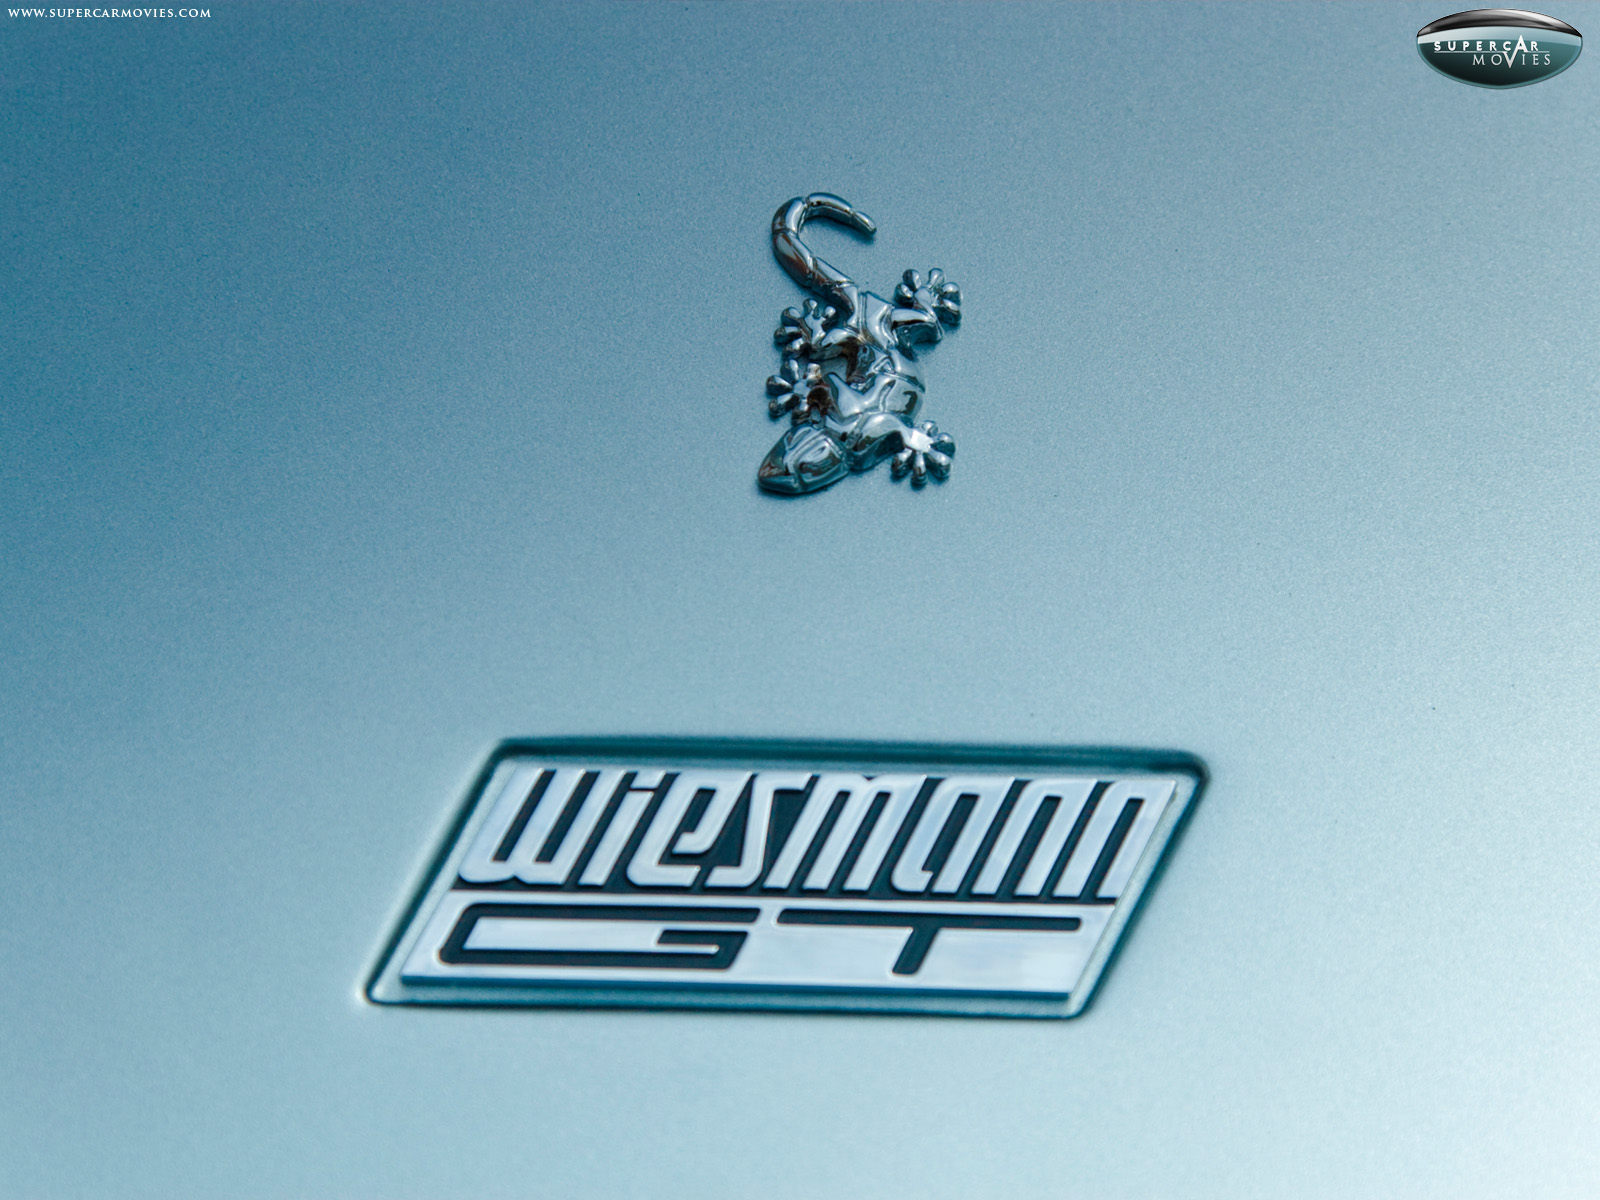 wiesmann gt logo wallpapers wiesmann gt logo stock photos